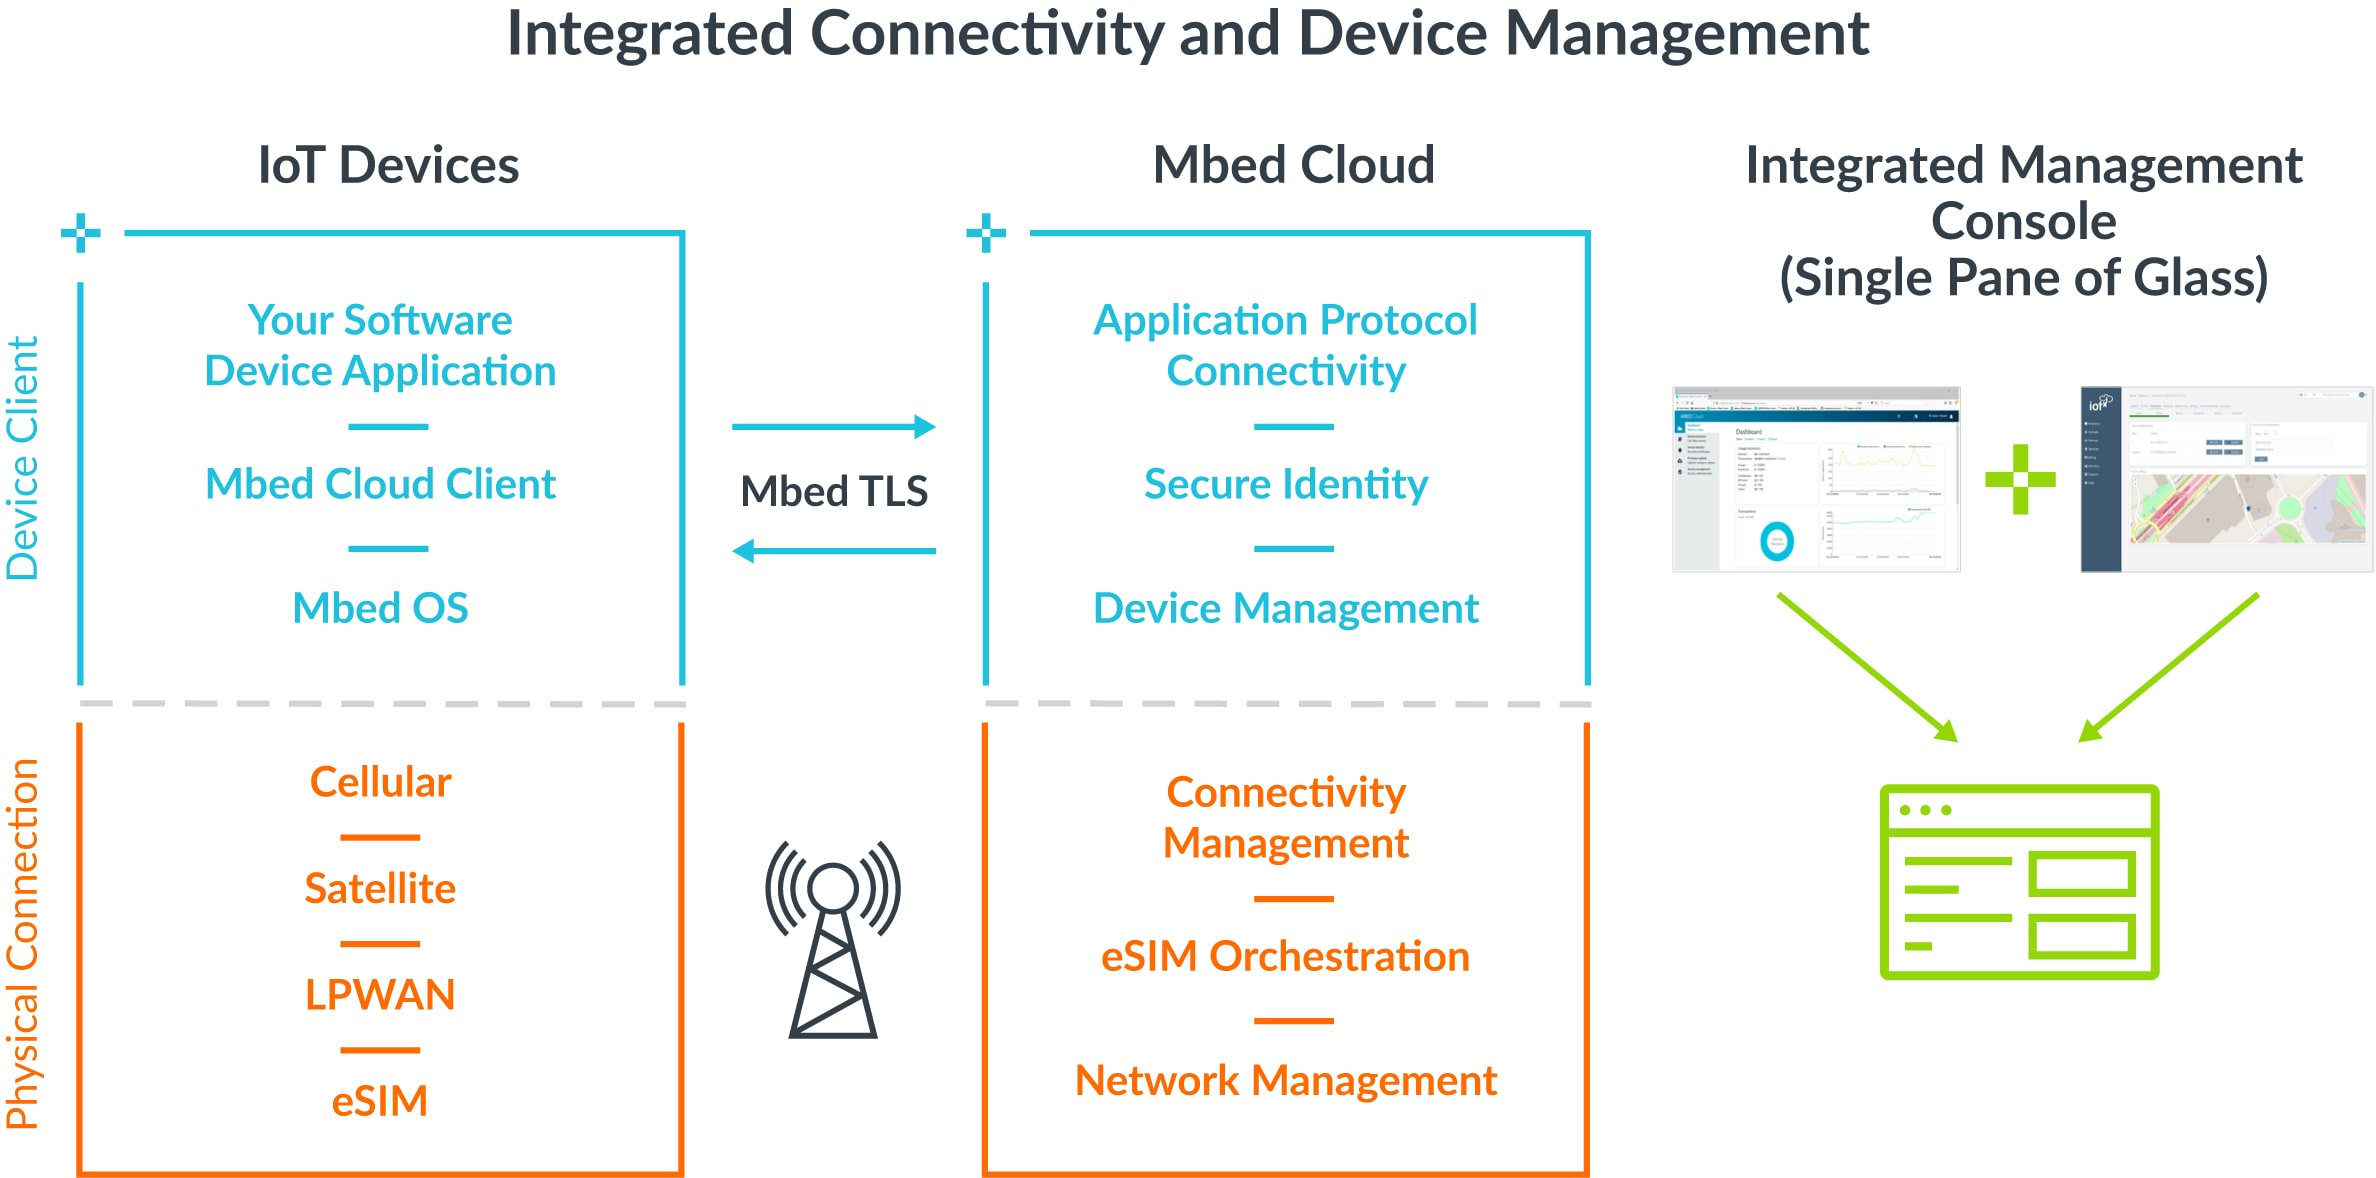 Arm Integrated Connectivity and Device Management